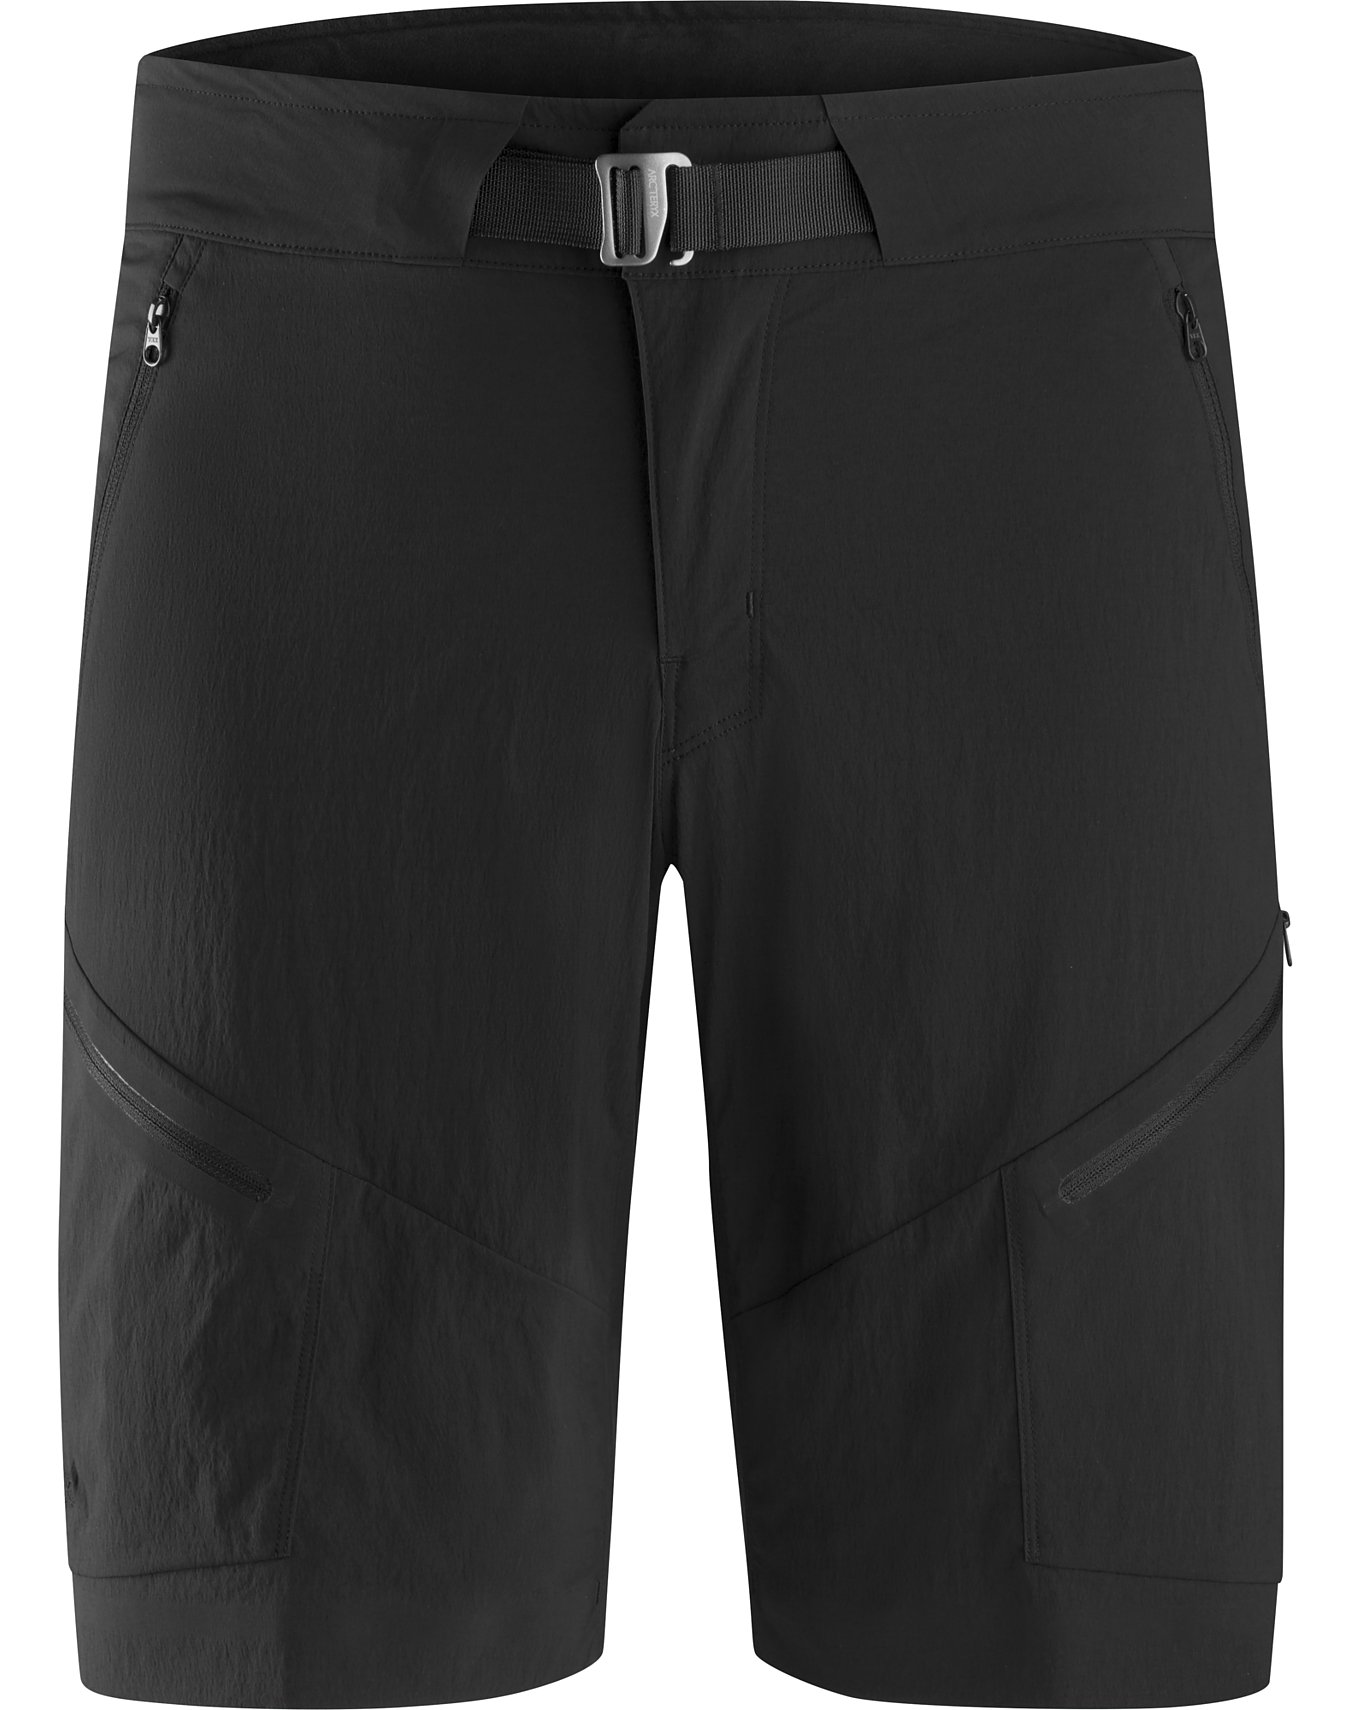 Fish and Birds Mens Beach Shorts Breathable Sports Pants with 3 Pockets